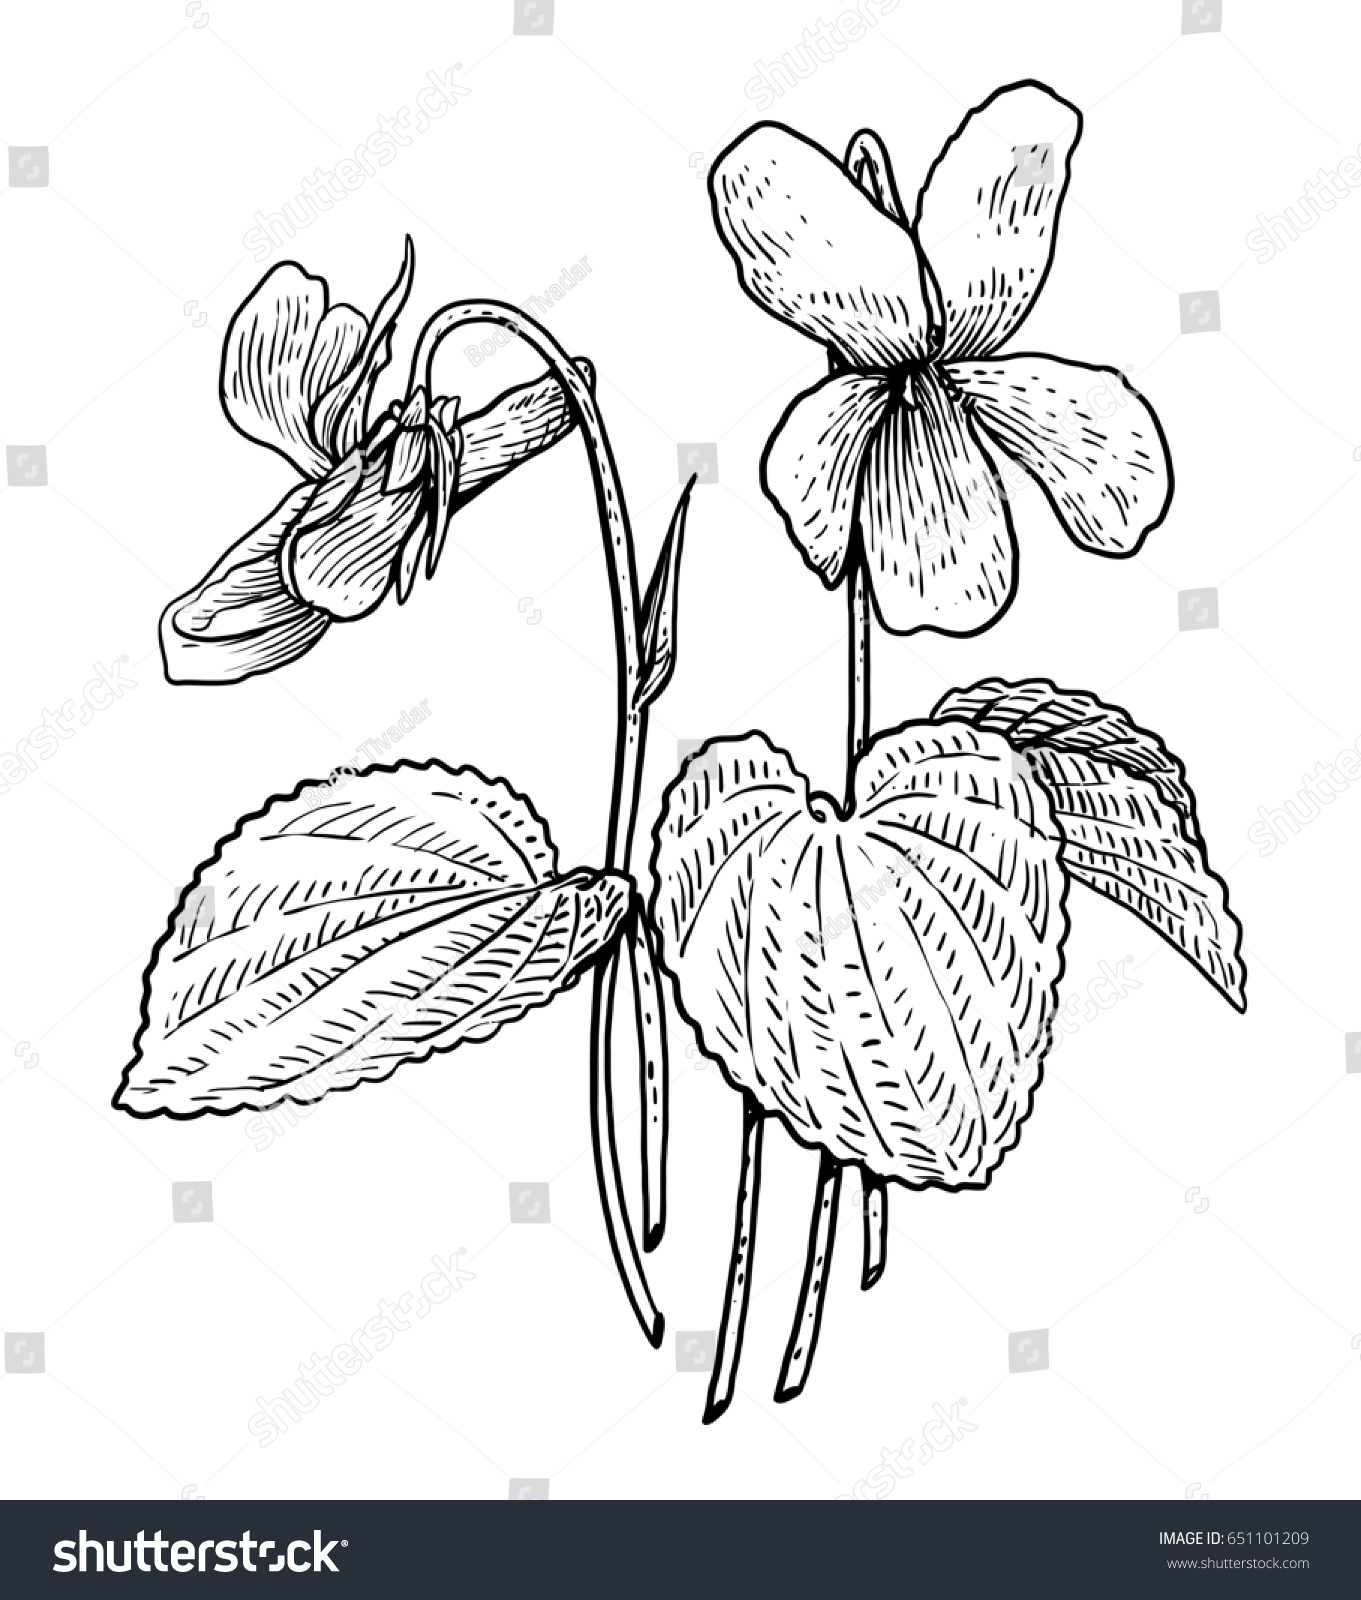 Line Drawing Violet : Violet illustration drawing engraving ink line stock